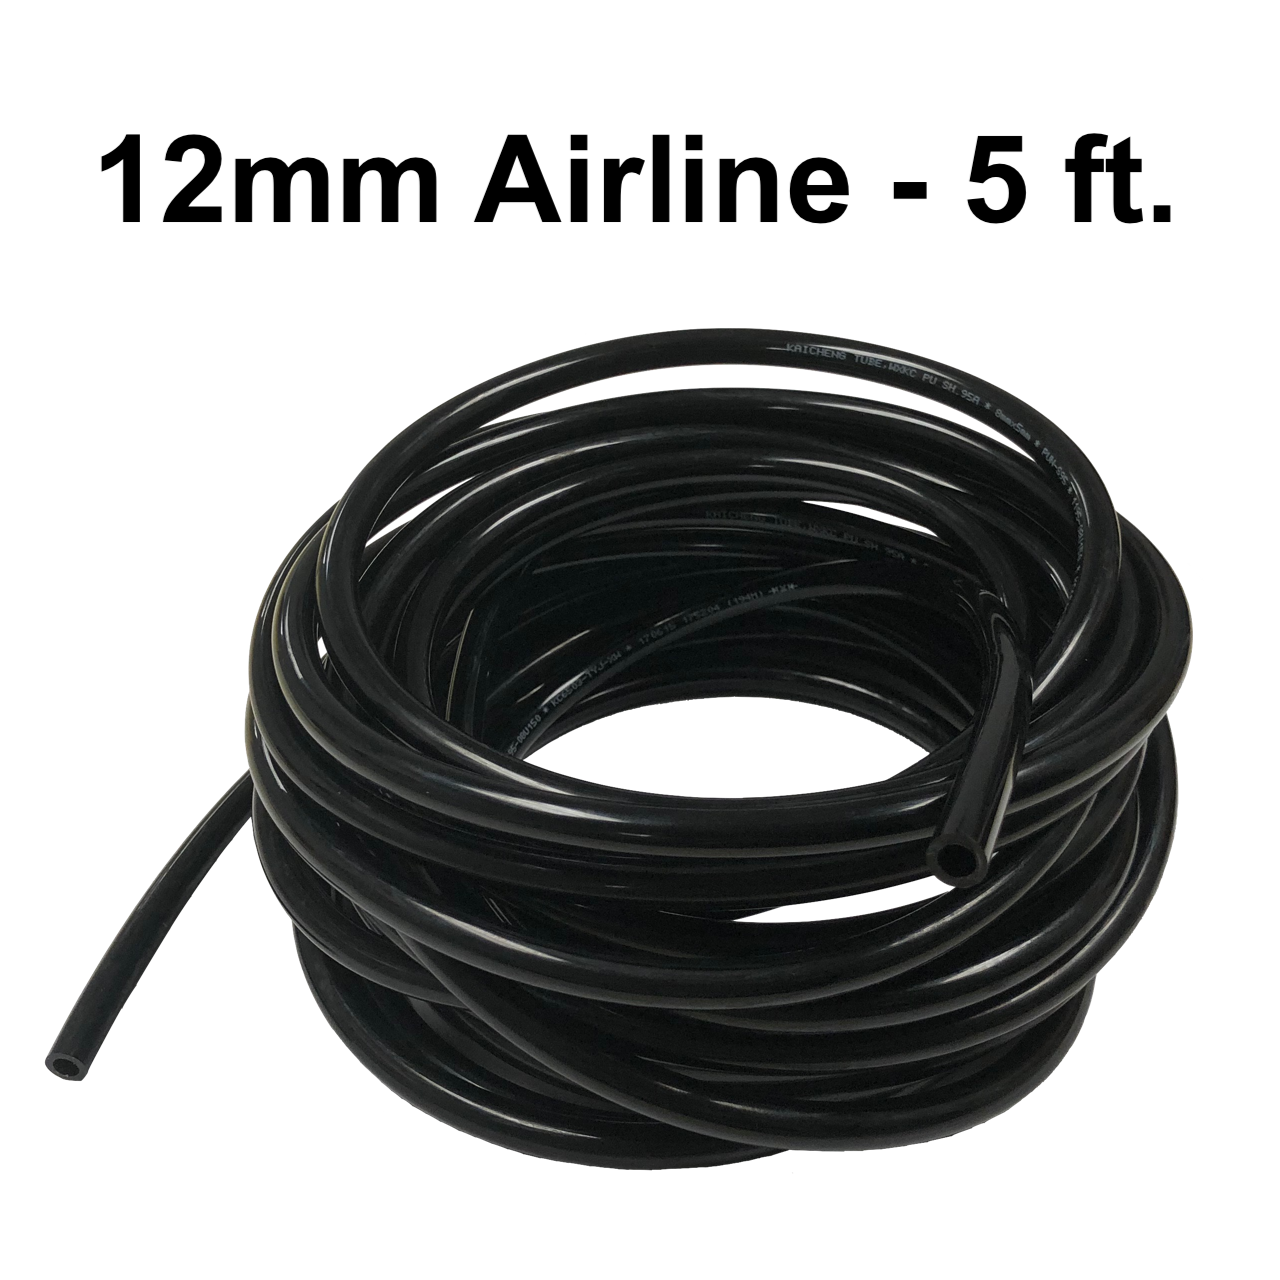 W-5509035 12mm Airline - 5 ft.